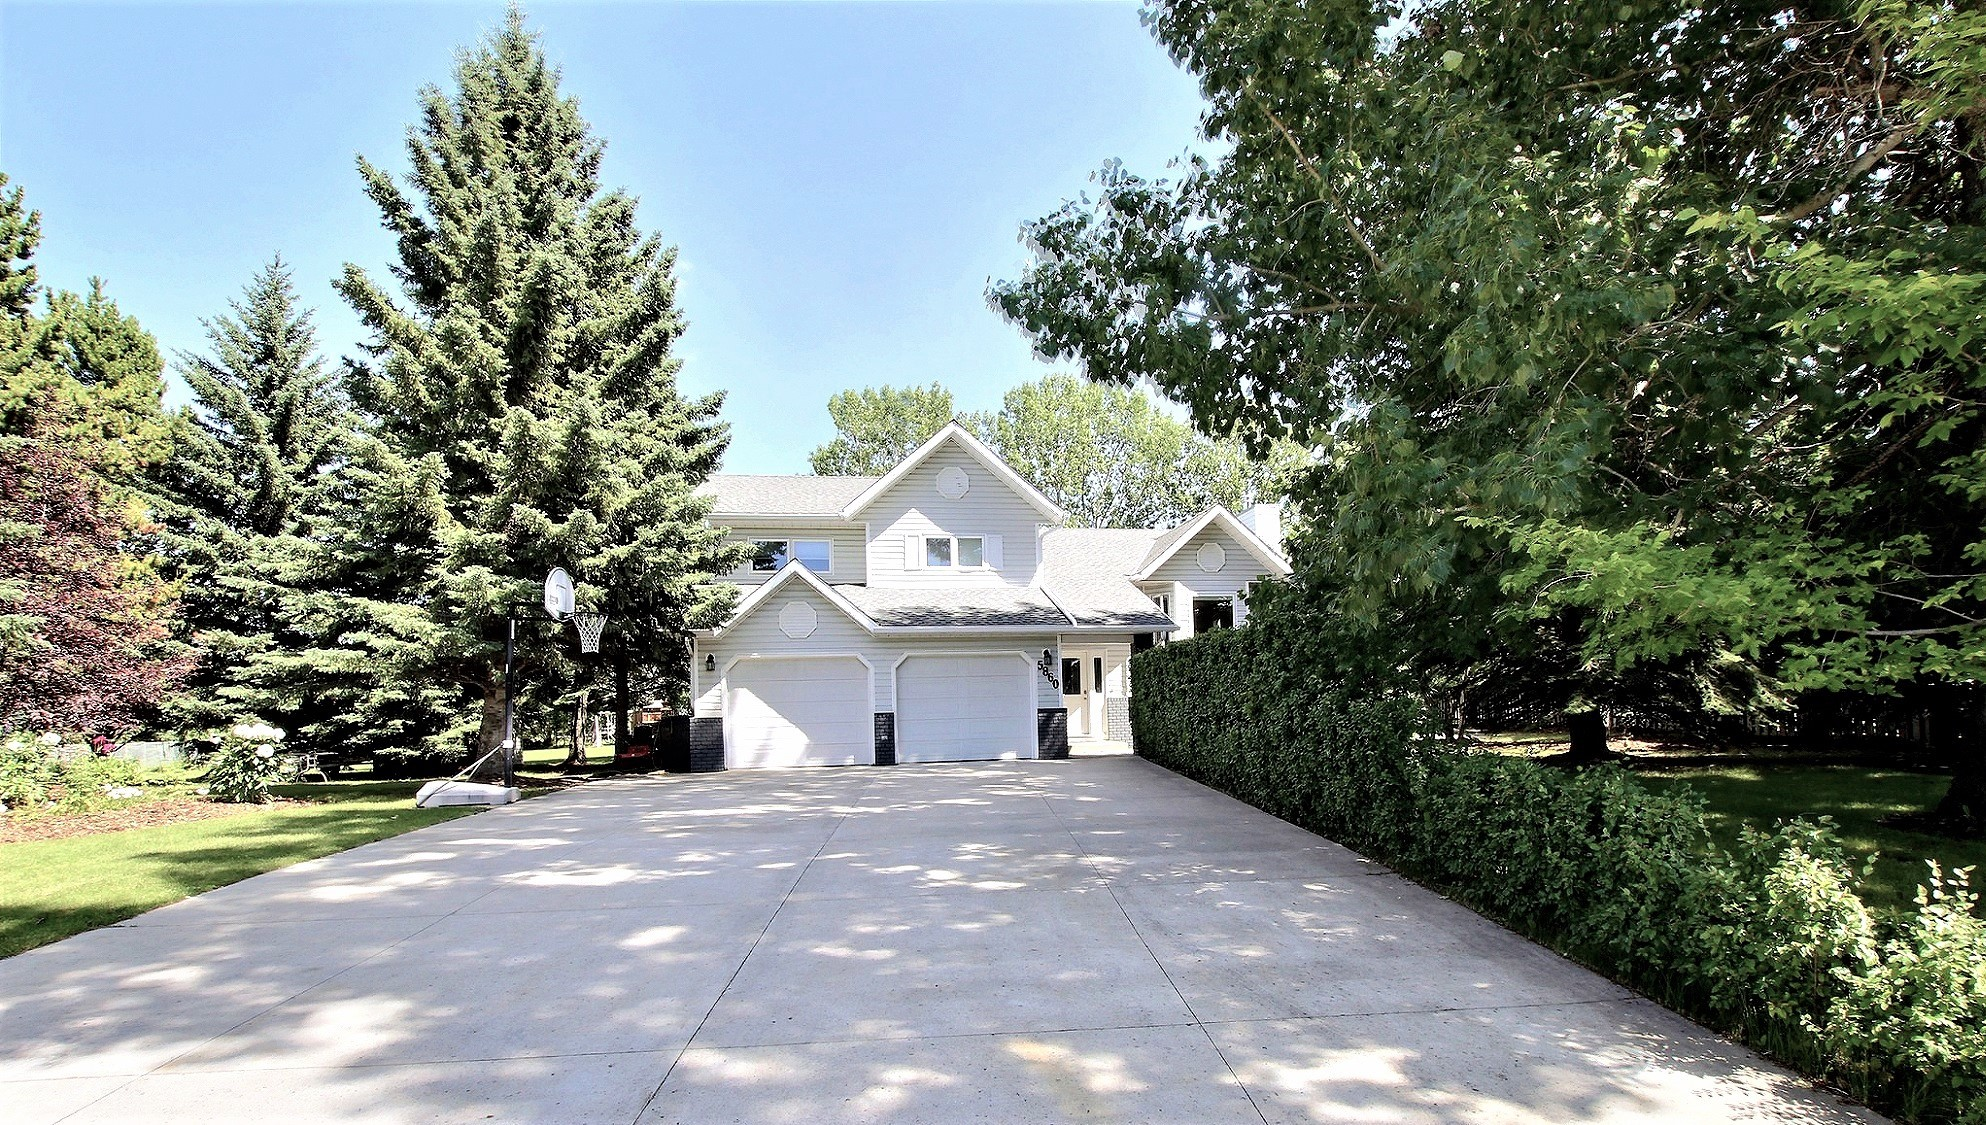 $739,000.00    5860 Imperial Drive